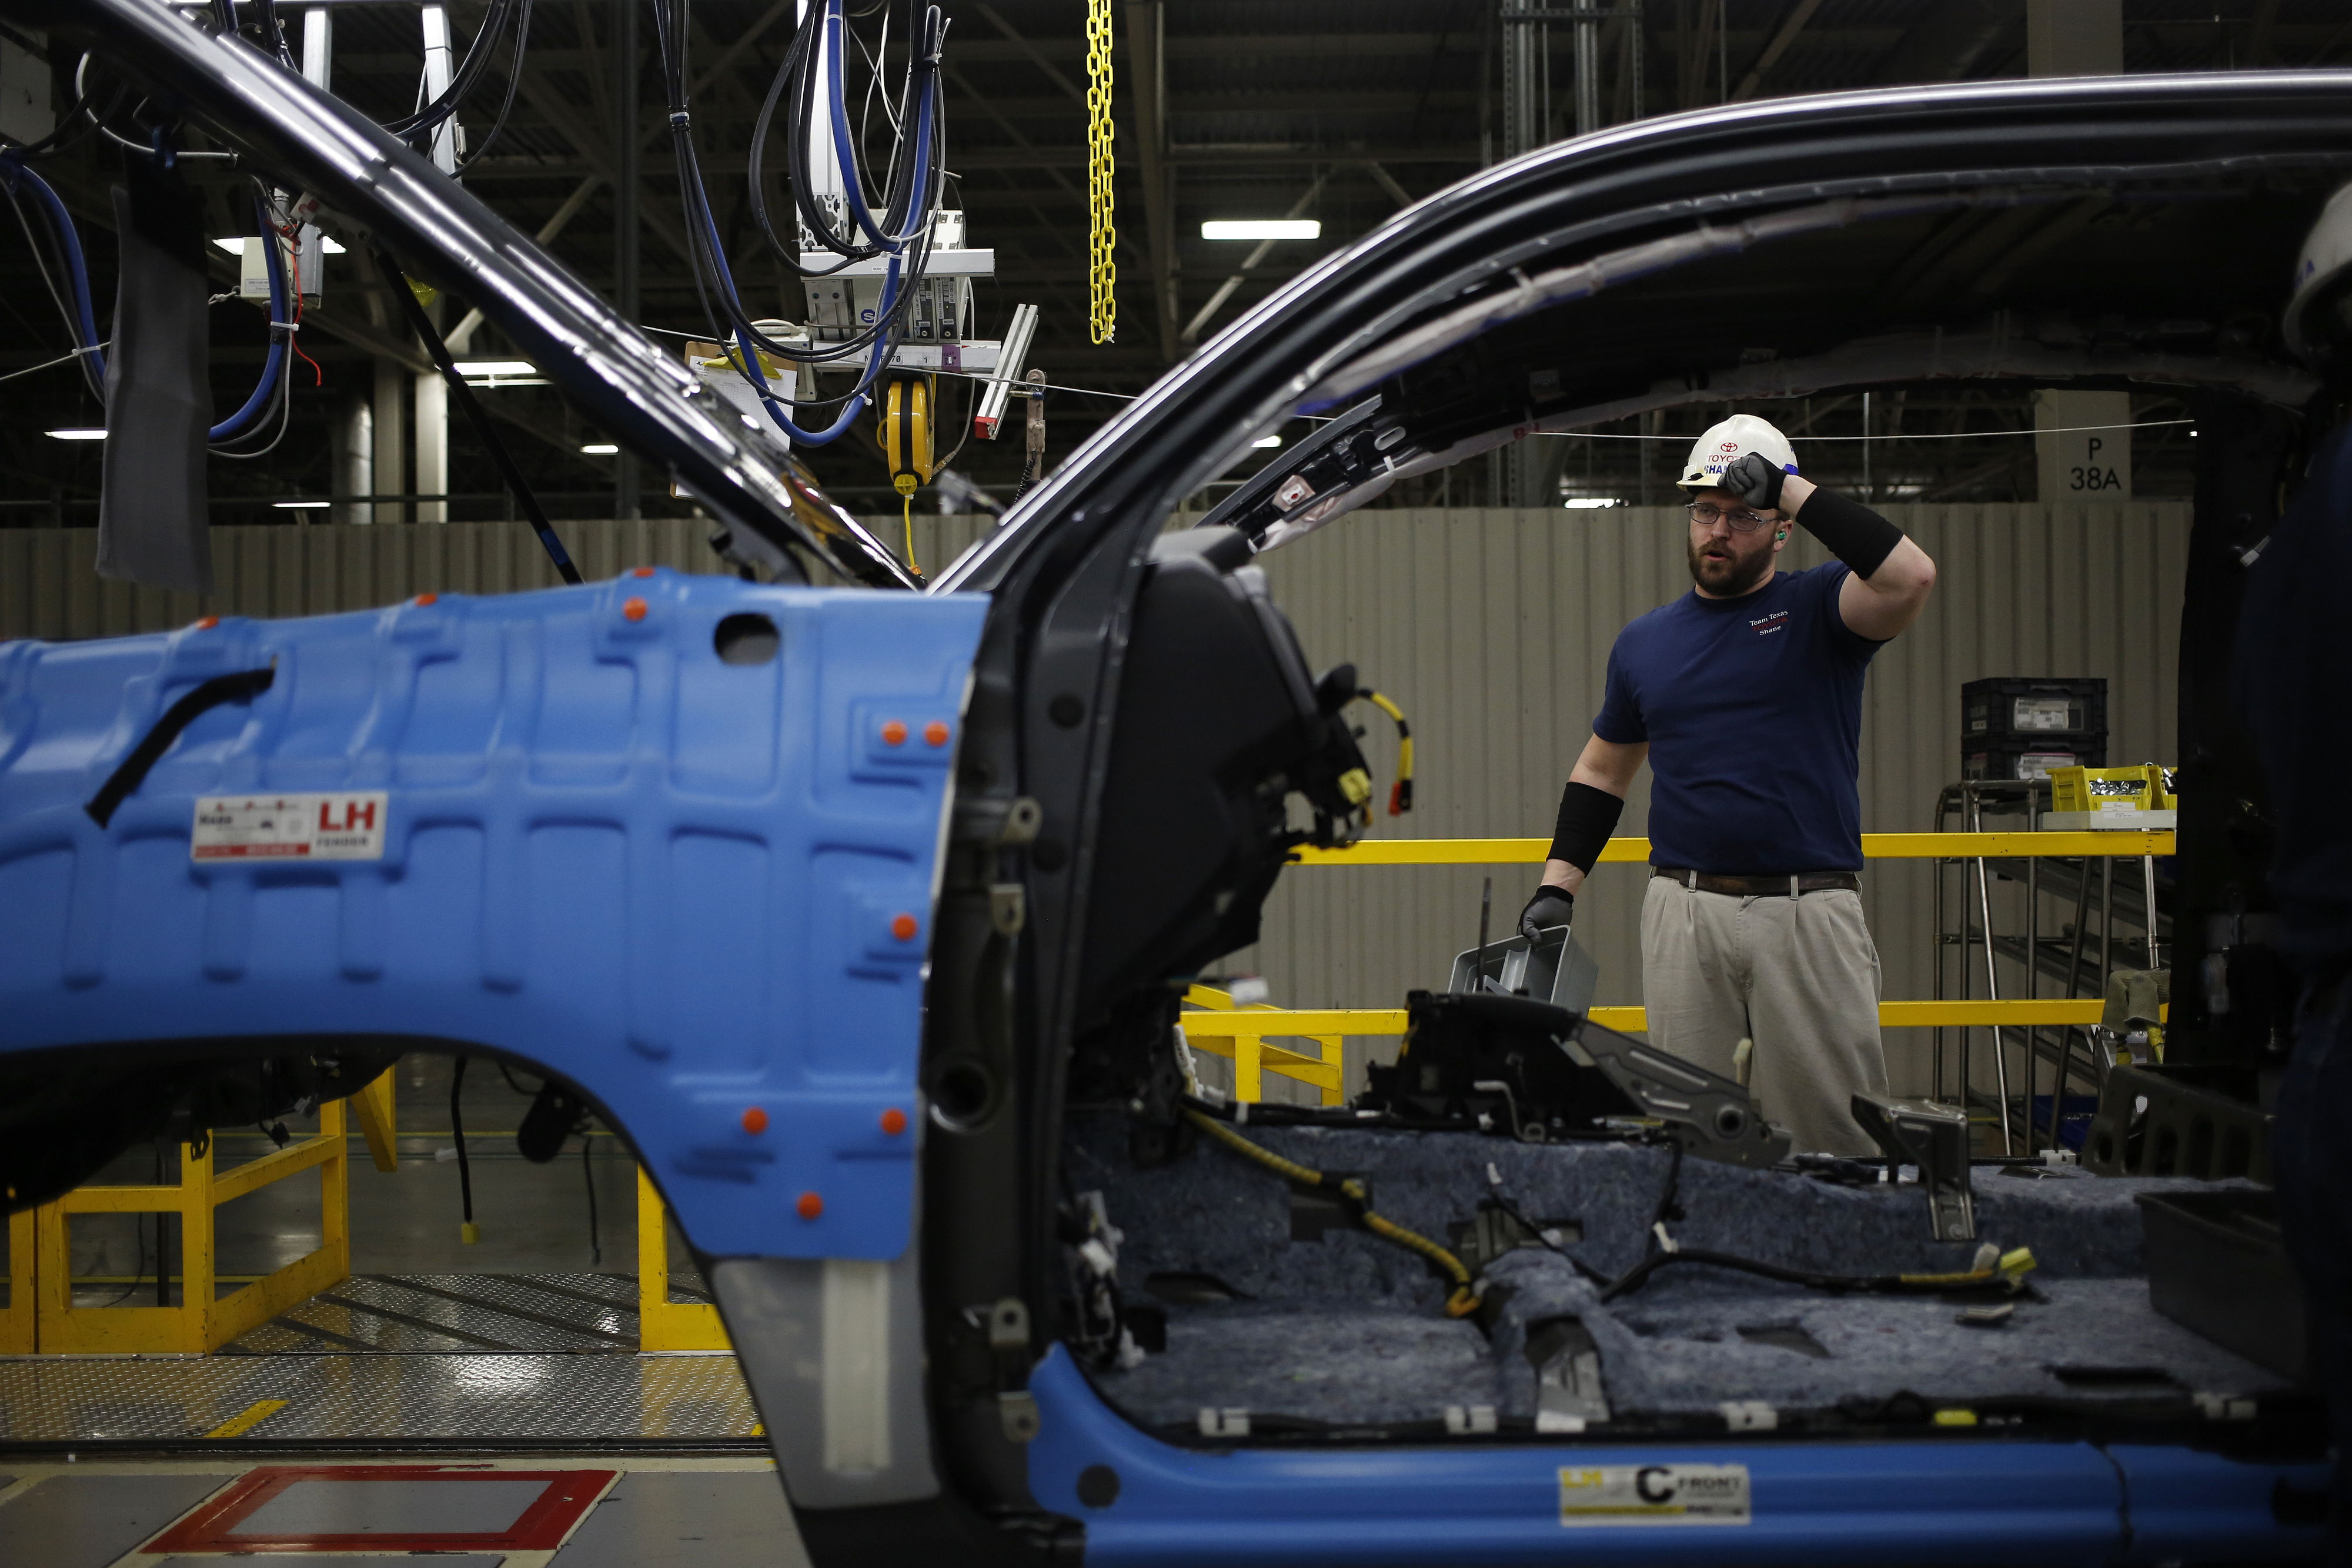 Operations Inside The Toyota Motor Corp. Manufacturing Facility Ahead Of GDP Figures